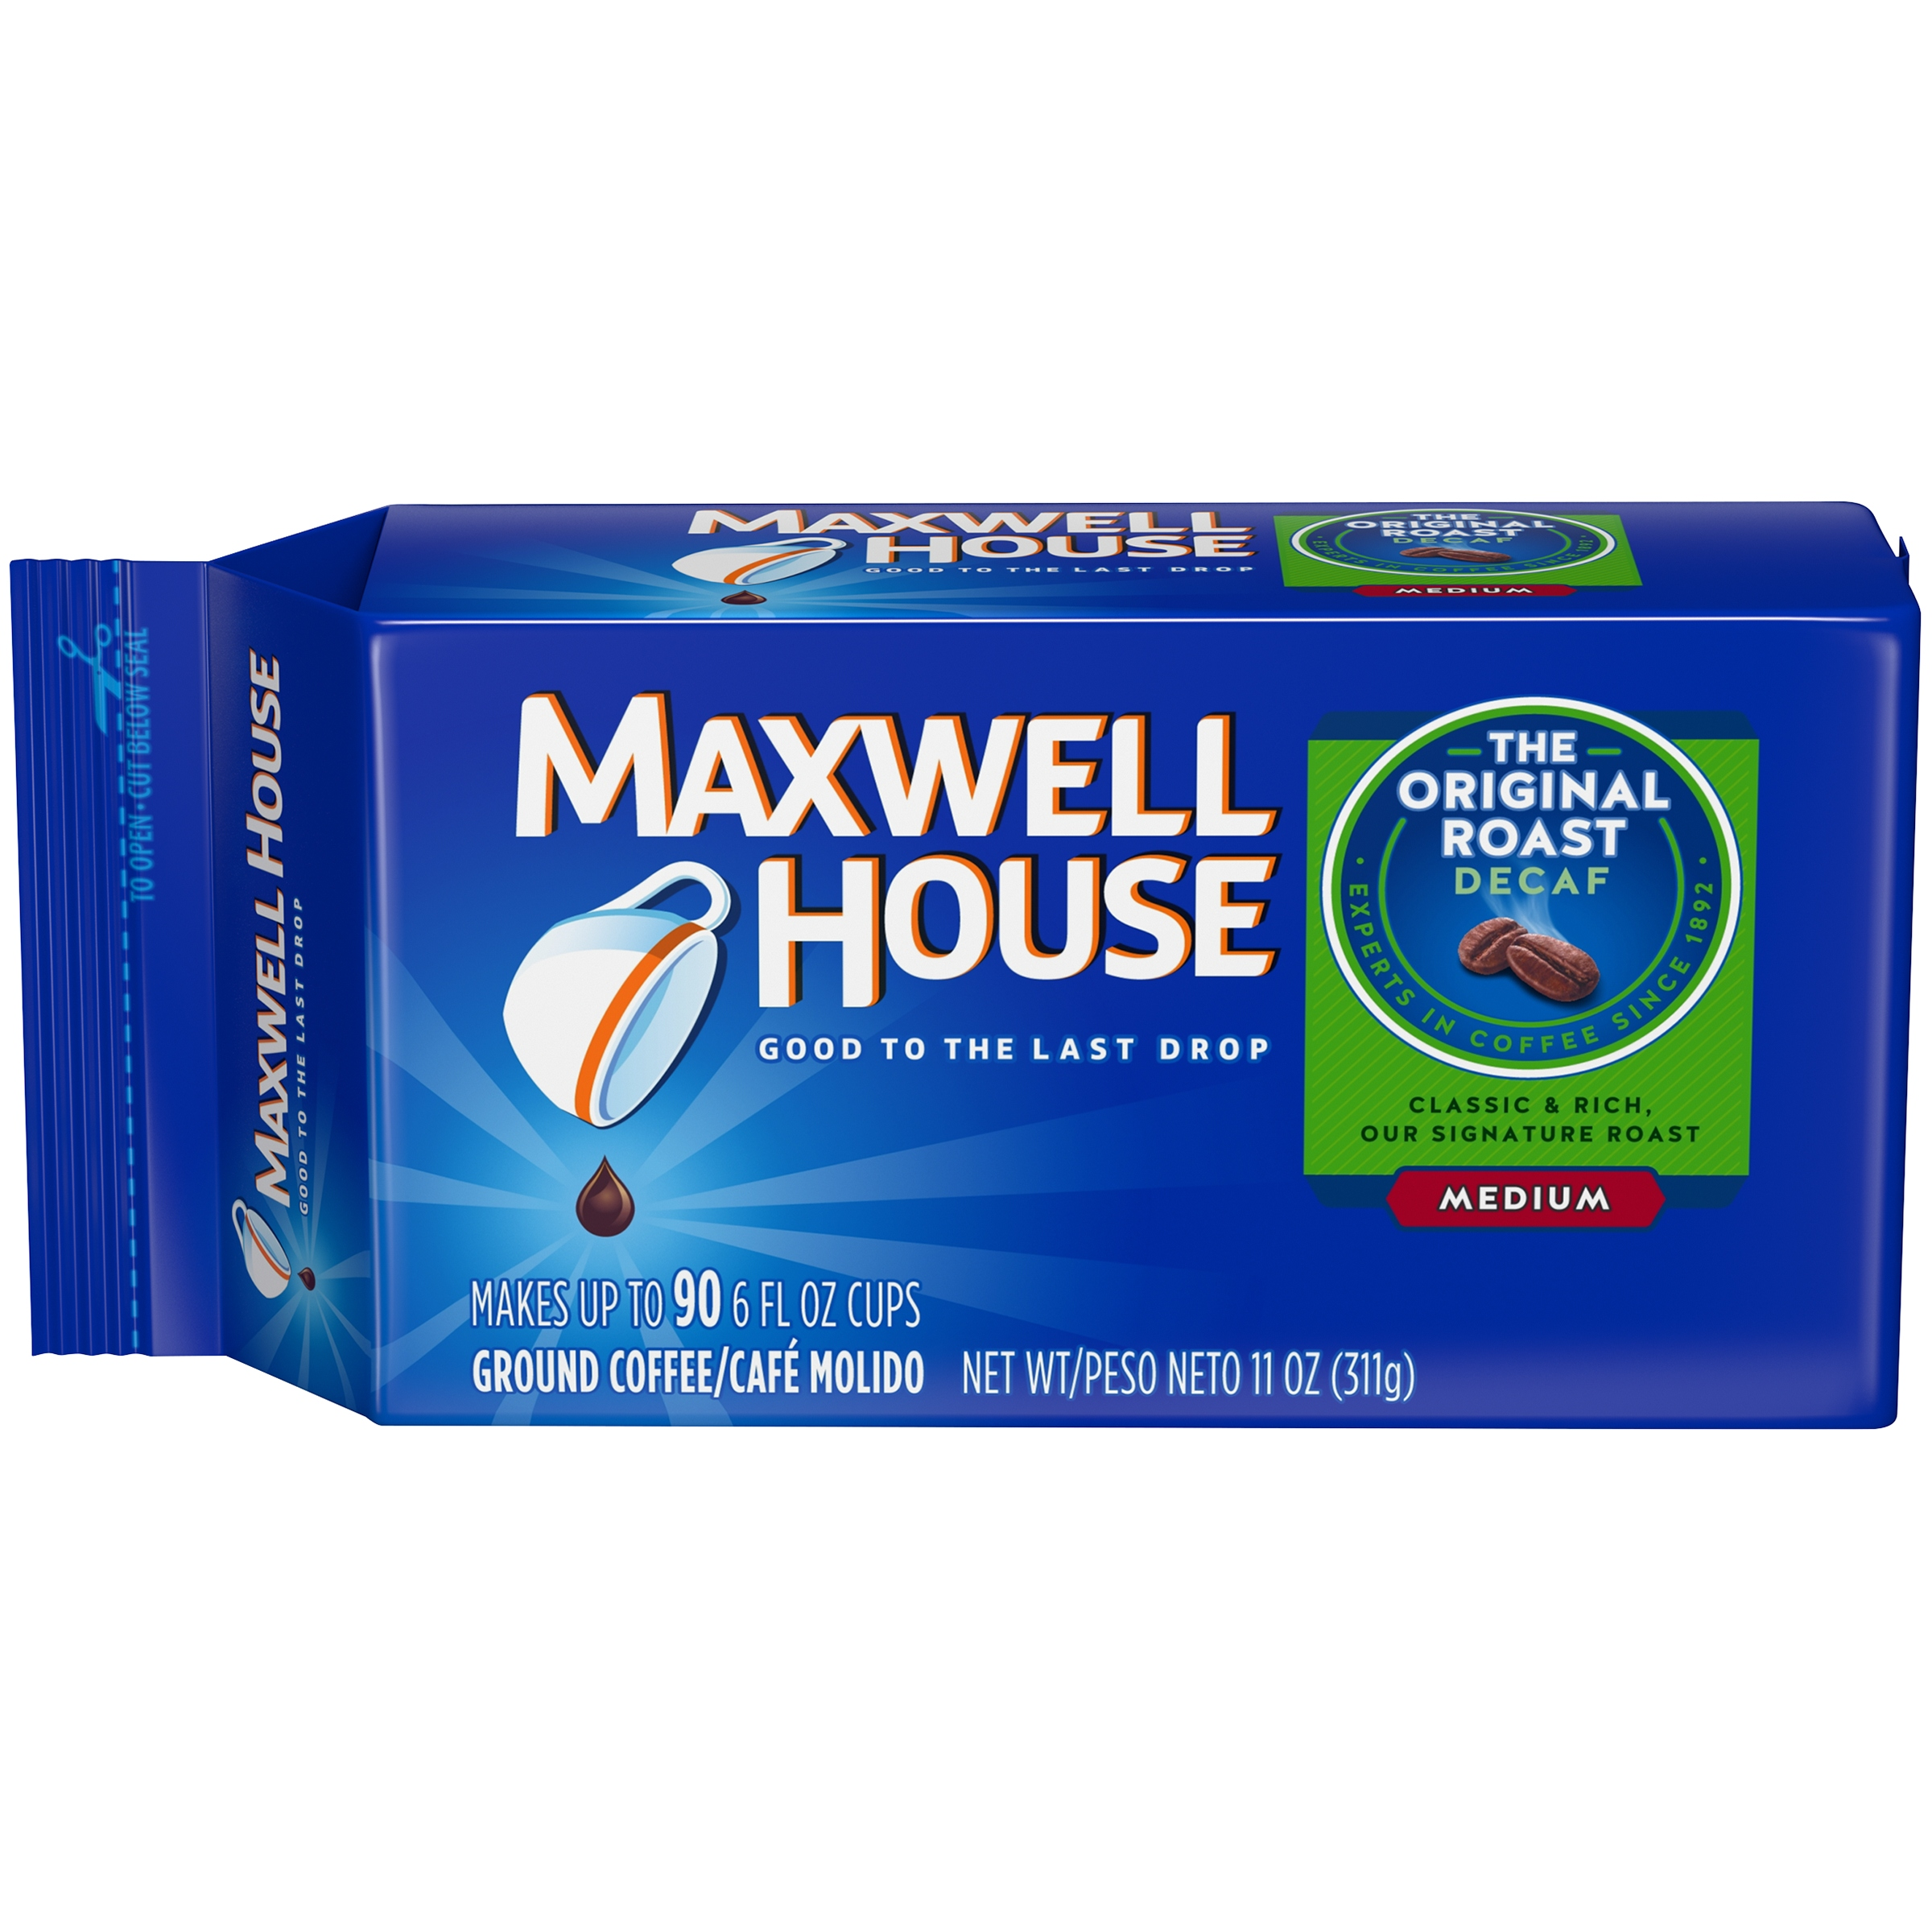 Maxwell House Original Roast Decaf Medium Ground Coffee 11 oz. Brick